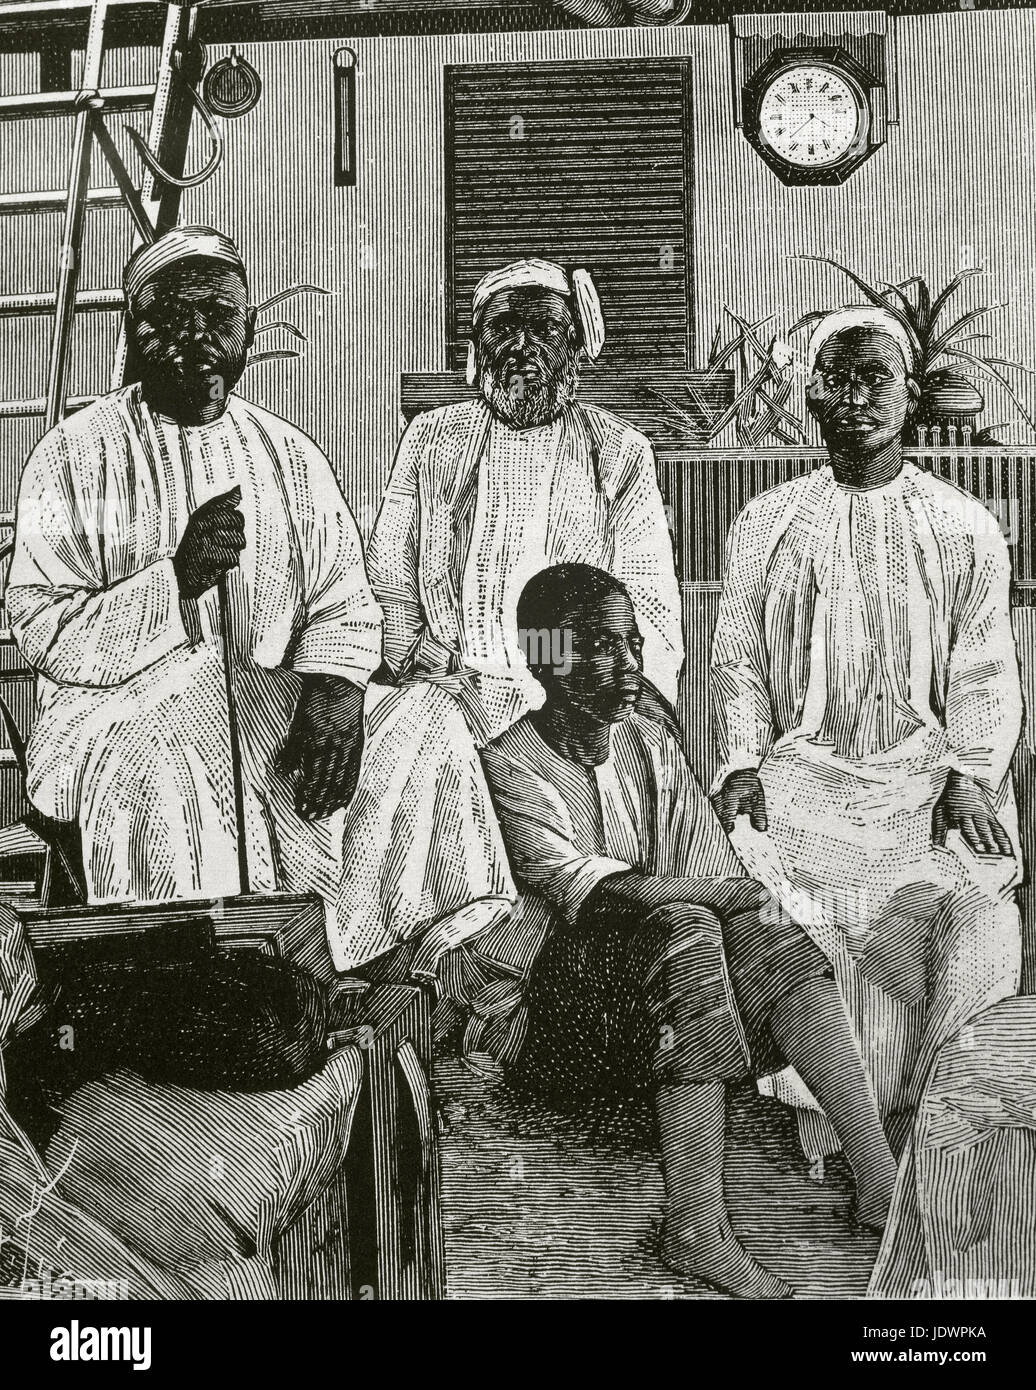 Tippu Tip (1832-1905). Swahili-Zanzibari slave trader. An ivory trader, explorer, plantation owner and governor. - Stock Image